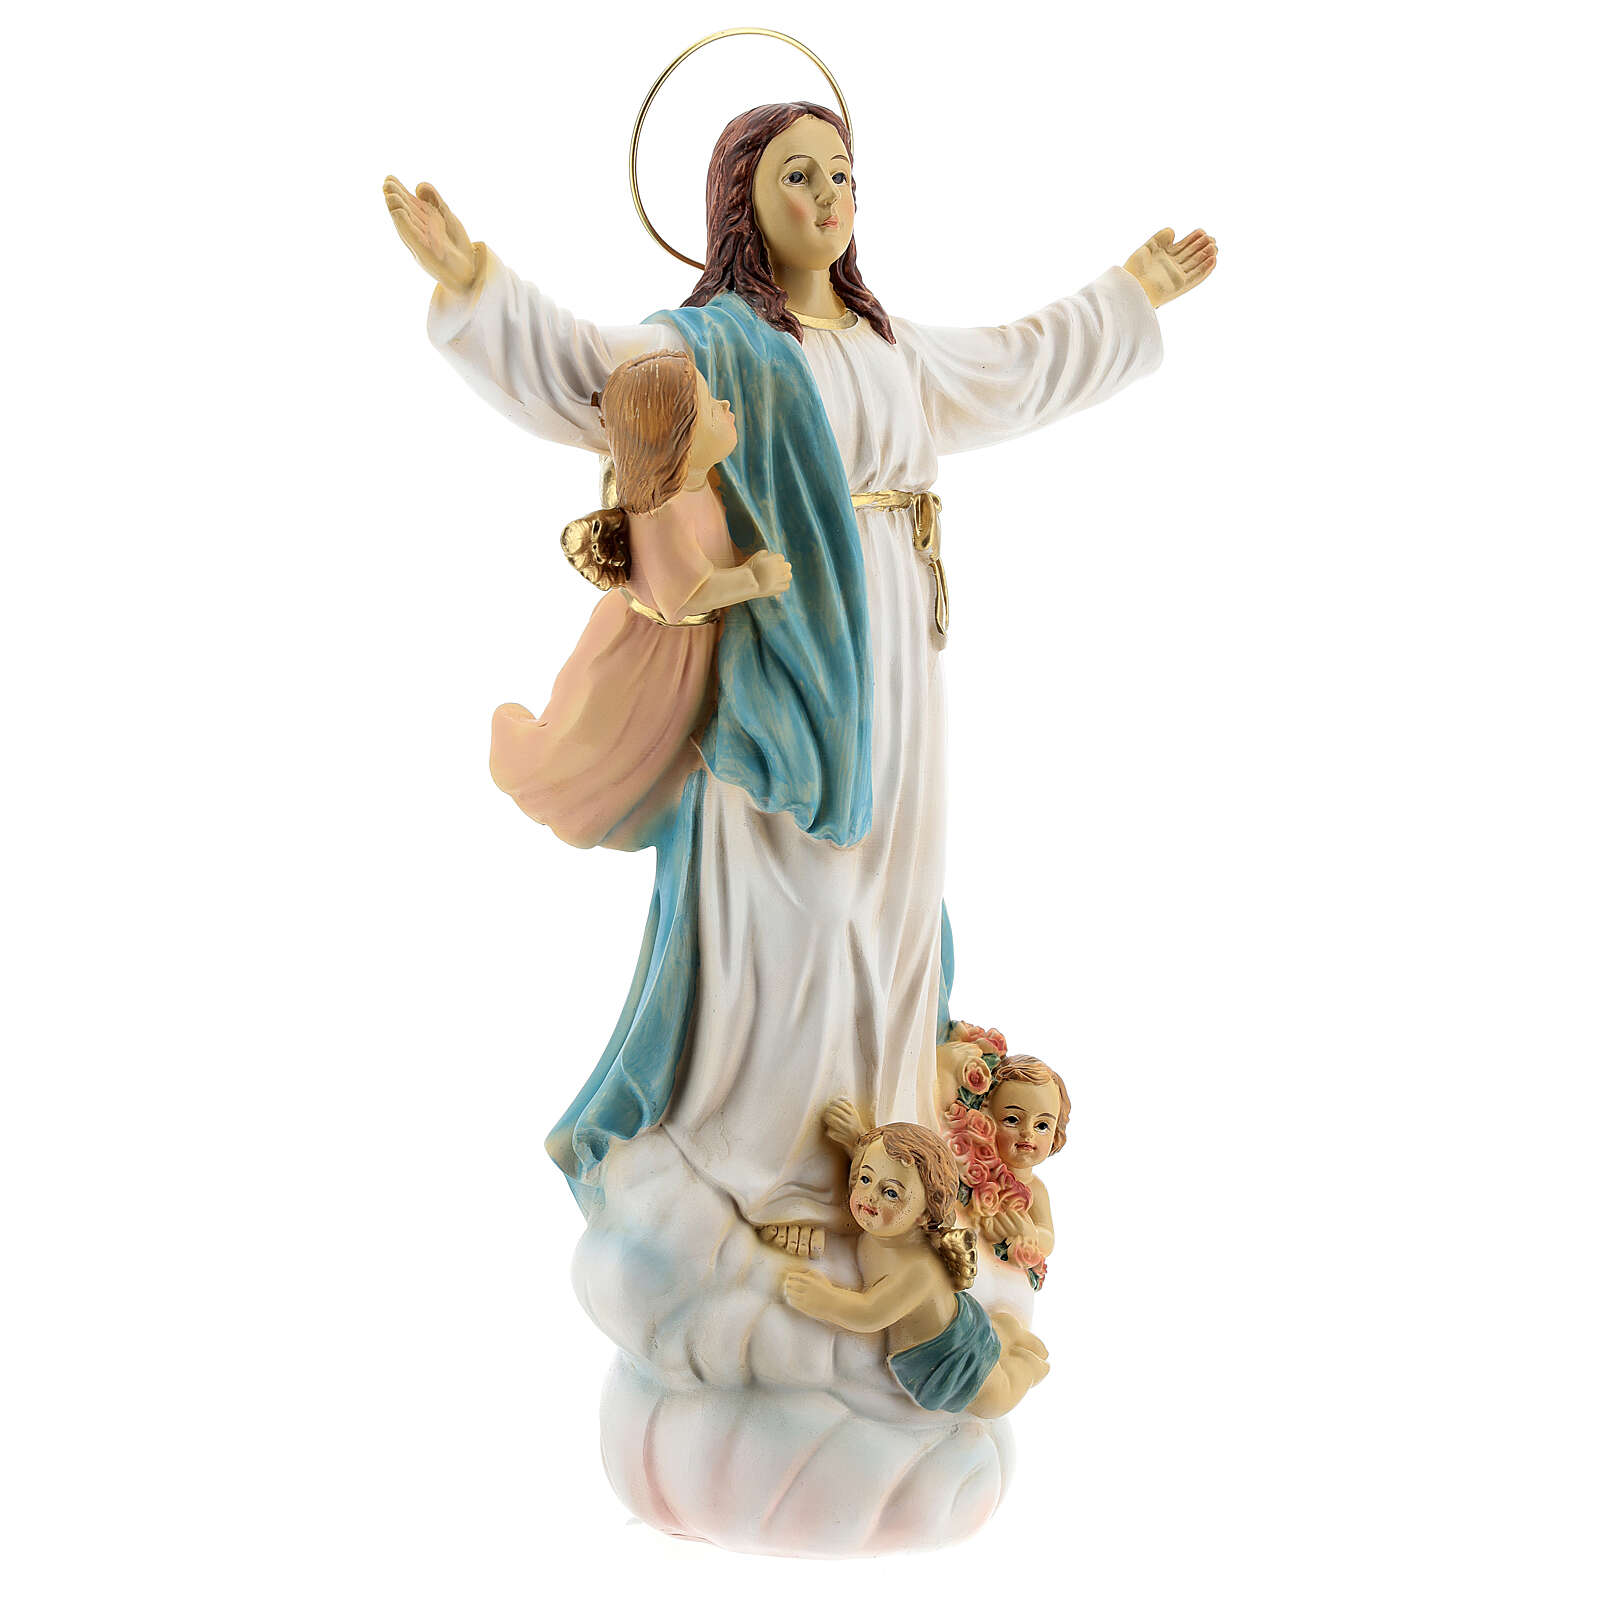 Statue of Our Lady of the Assumption angels resin 30 cm 4